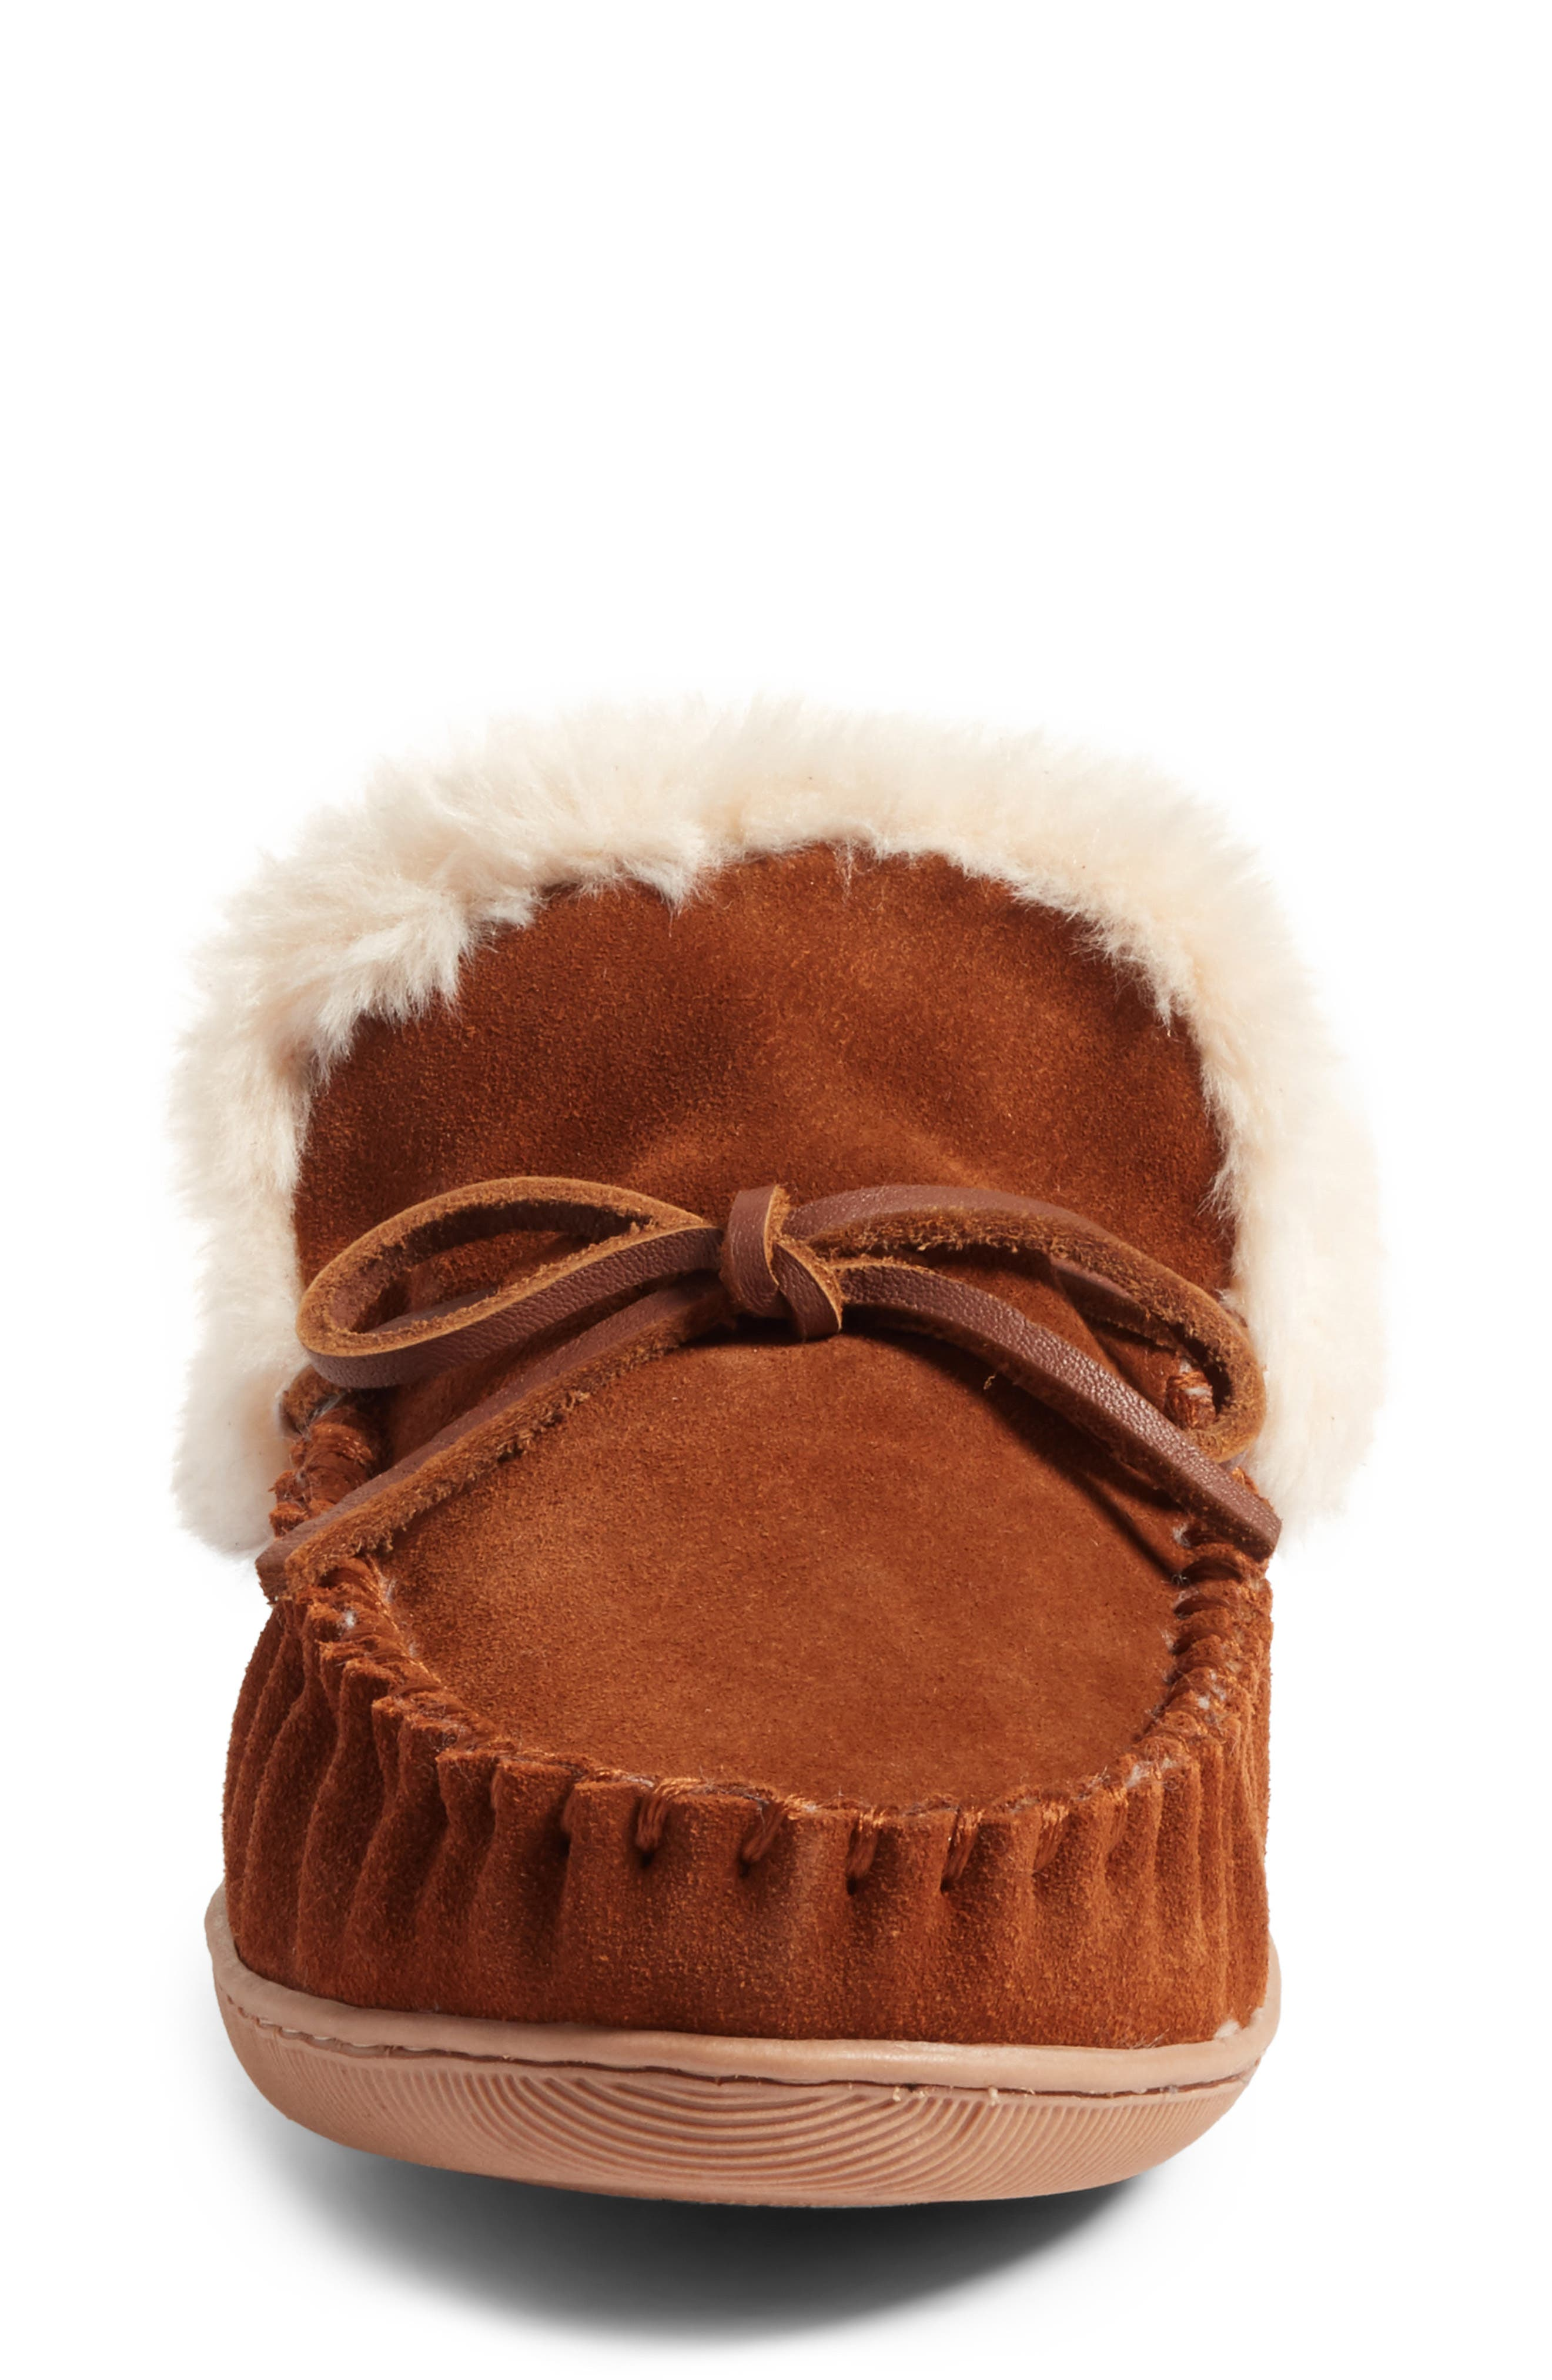 J.Crew Lodge Faux Shearling Moc Slipper,                             Alternate thumbnail 5, color,                             Dark Nutmeg Suede